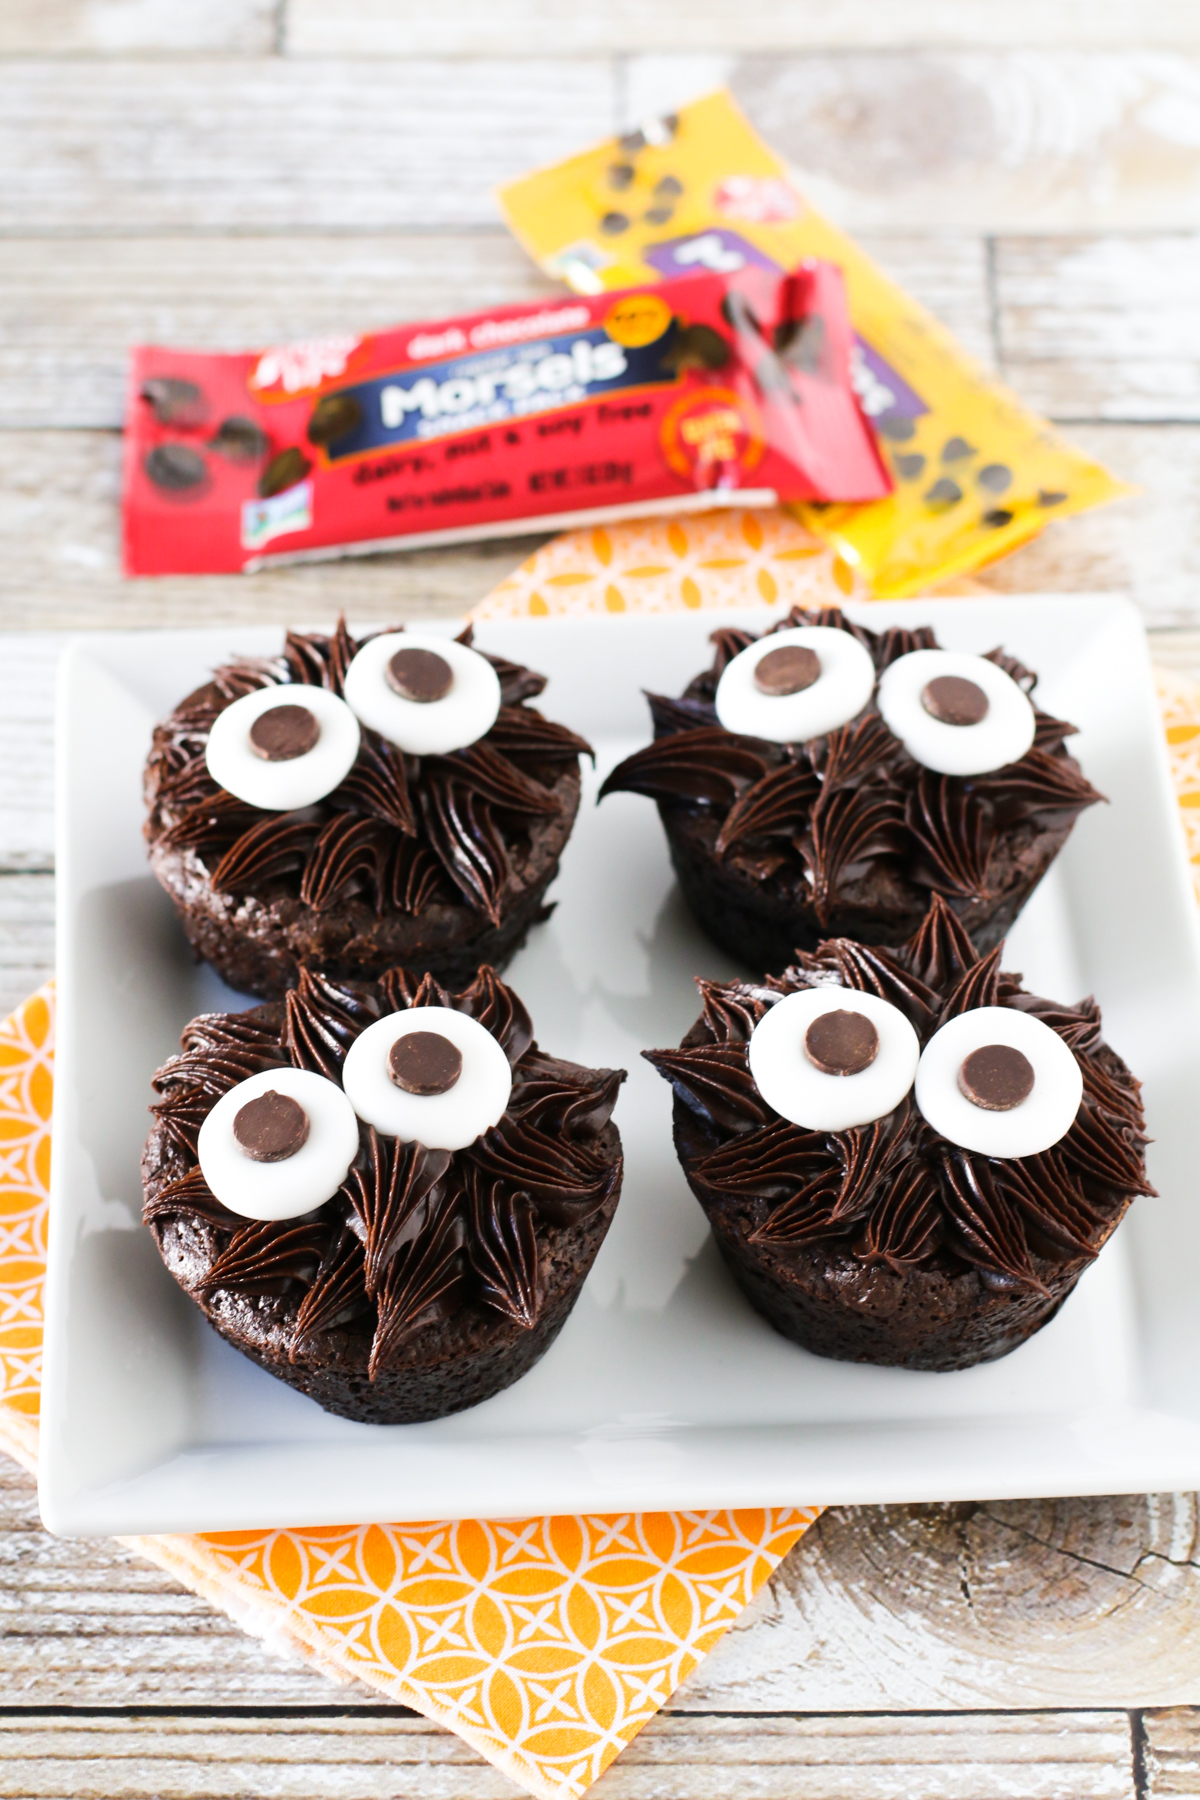 Gluten Free Vegan Chocolate Monster Brownies. These adorable frosted brownies are allergen free and made with Enjoy Life chocolate chips!